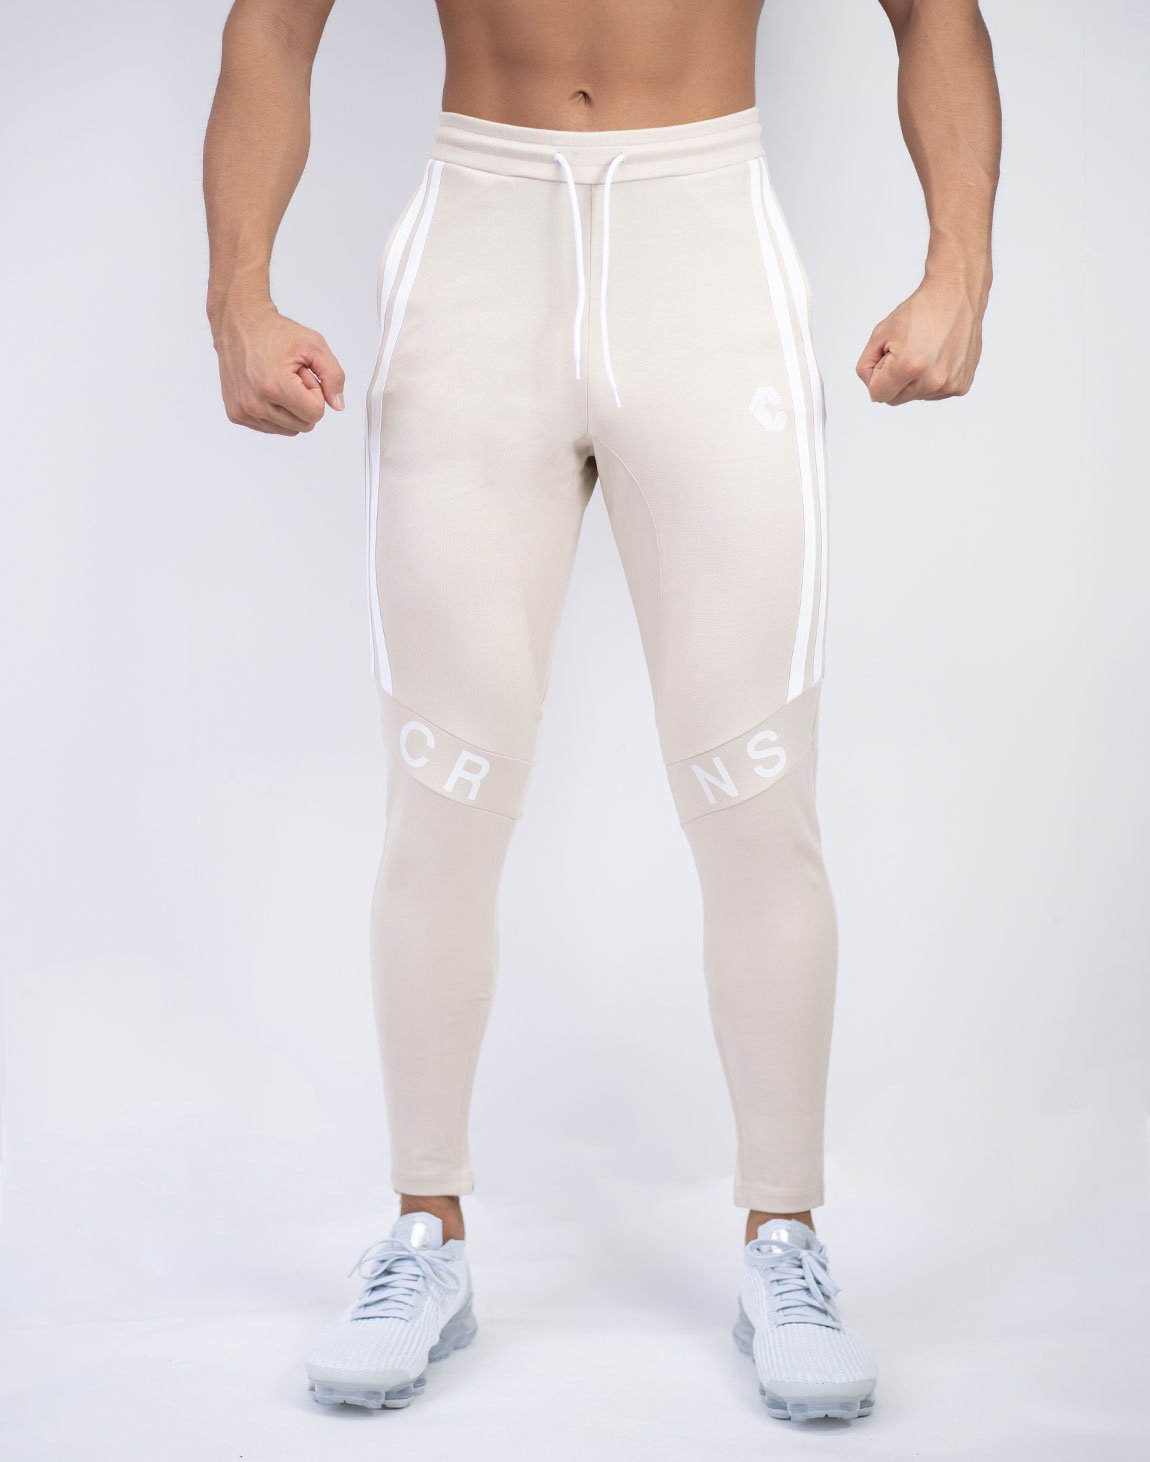 <img class='new_mark_img1' src='https://img.shop-pro.jp/img/new/icons55.gif' style='border:none;display:inline;margin:0px;padding:0px;width:auto;' />CRNS KNEE LOGO PANTS 【BEIGE】